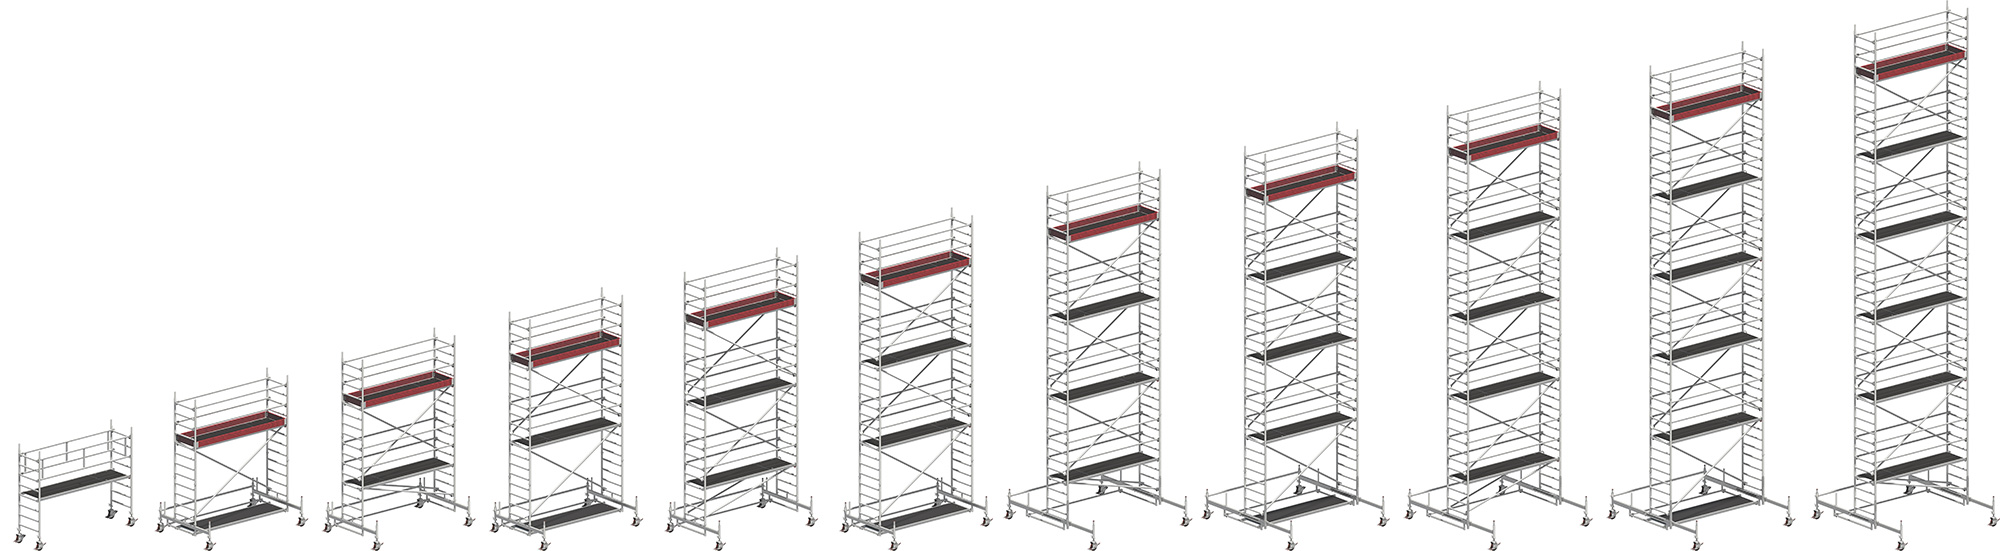 Uni Standard Rolling Tower working height range from 3.20m to 13.38m